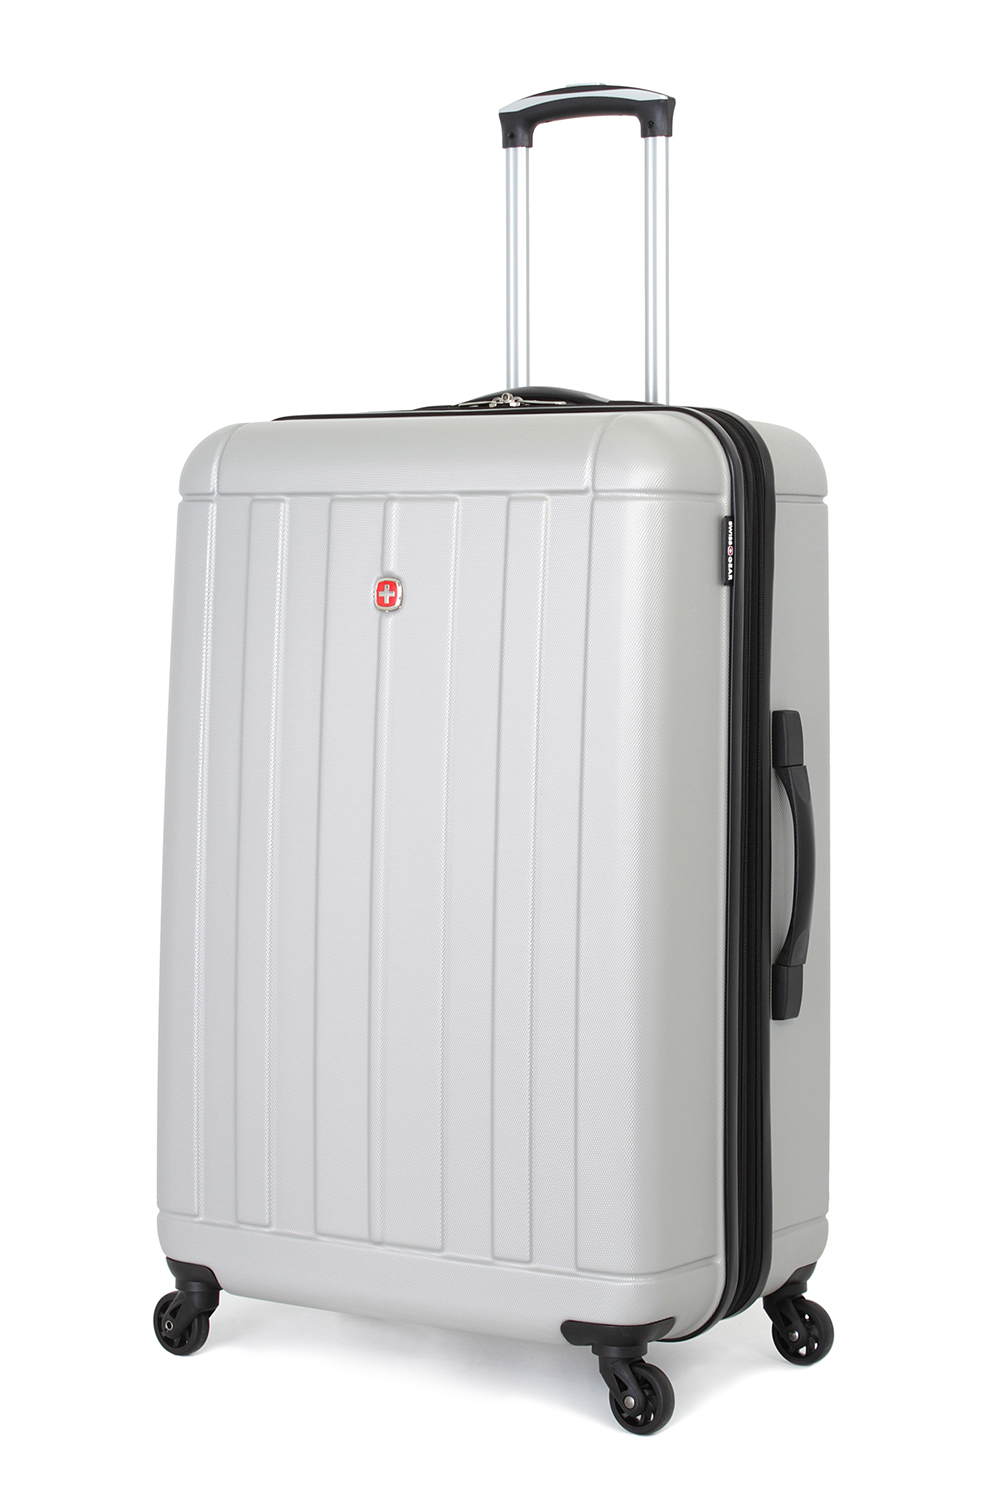 SWISSGEAR 6297 27 Expandable Hardside Spinner - Silver Luggage